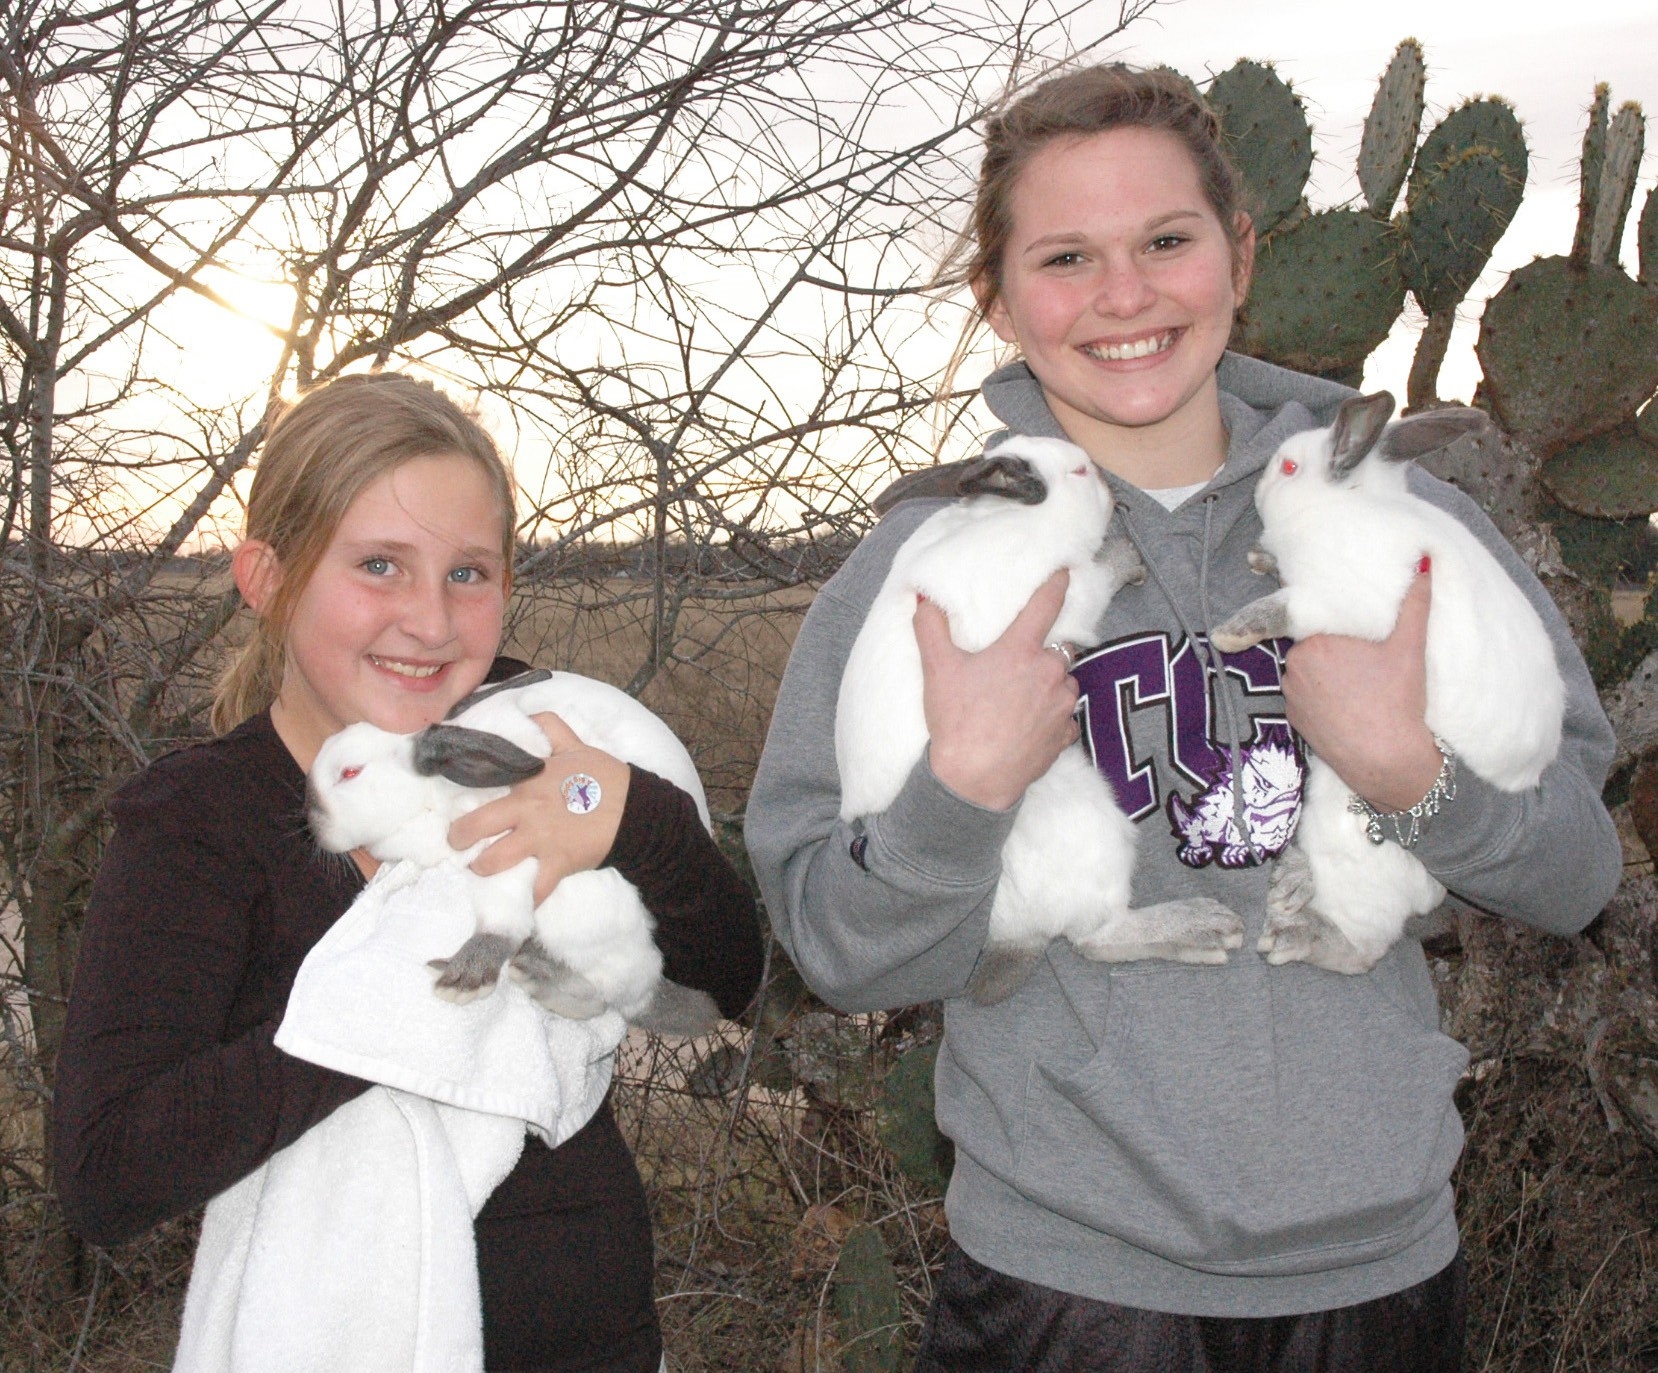 """Siblings Kendall Niemietz (9 years old) and freshman Tori Jasik are ready for the Atascosa County Junior Livestock Show. Their rabbits, """"Buggers"""", """"Spot"""" and """"Snowball"""" were shown on Tuesday. They are members of Pleasanton FFA. Judging continues this week with the big auction at 1 p.m. this Saturday."""